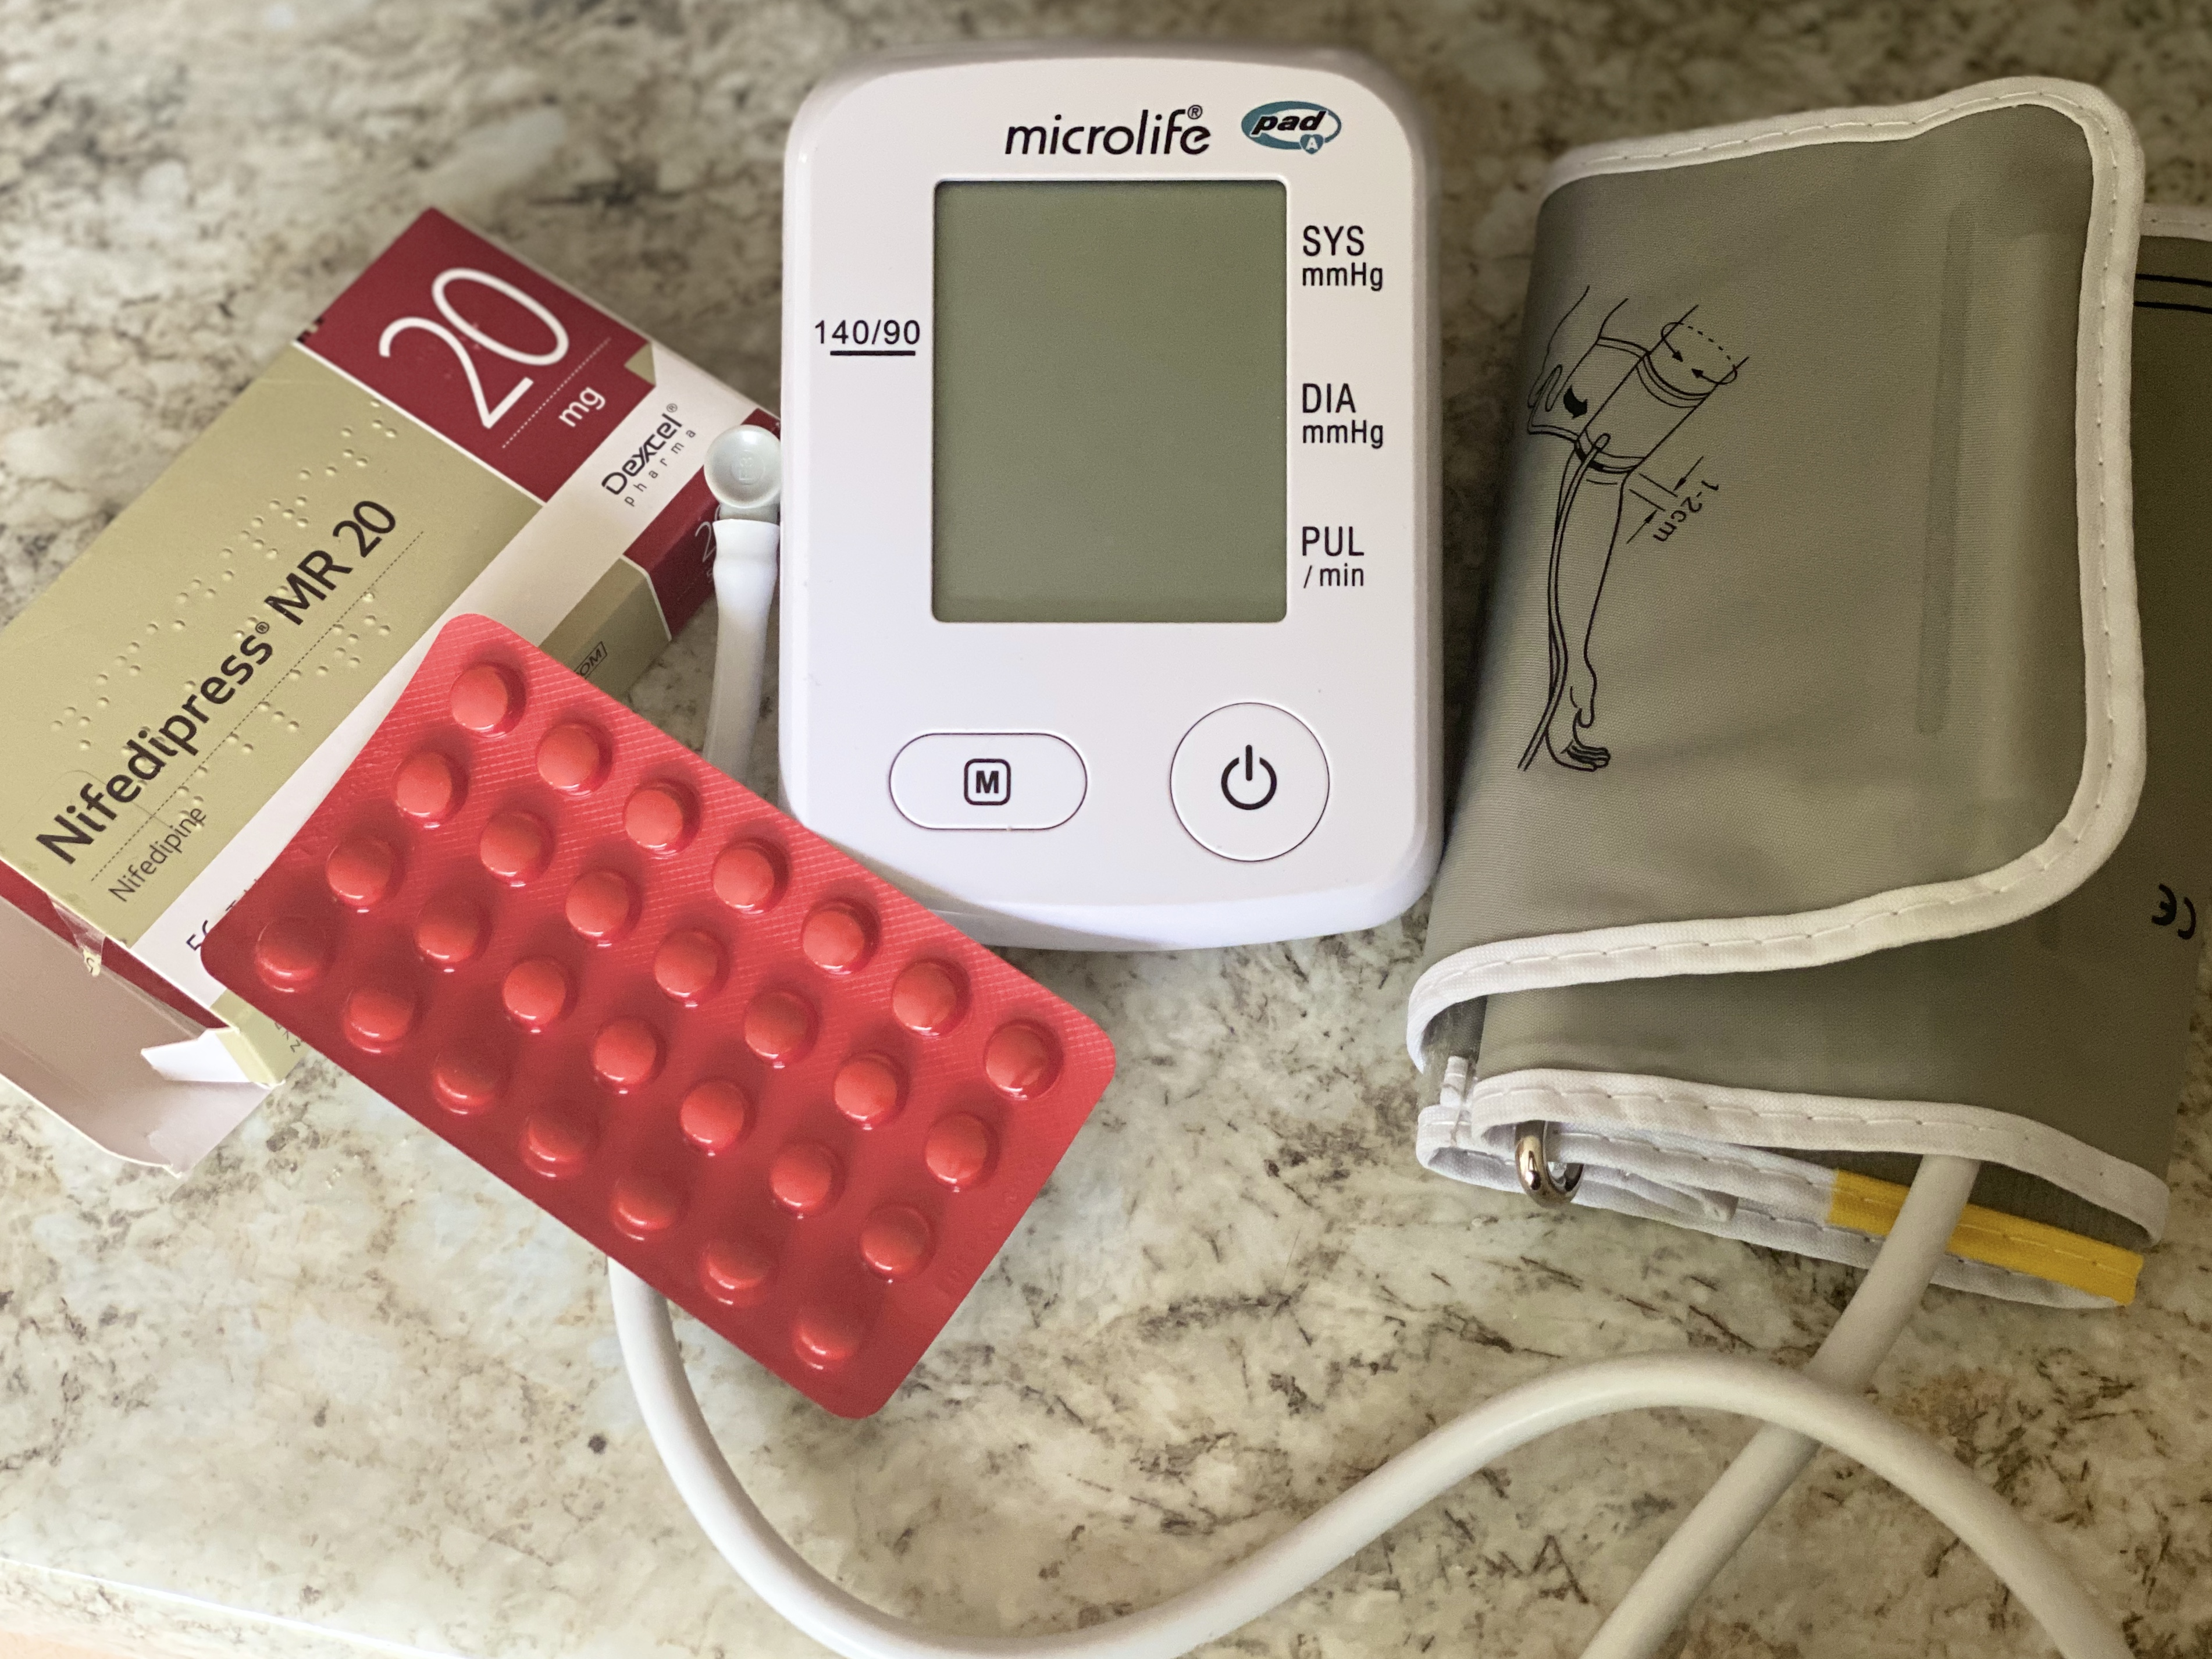 Blood pressure monitor alongside medication lying on a marble surface.